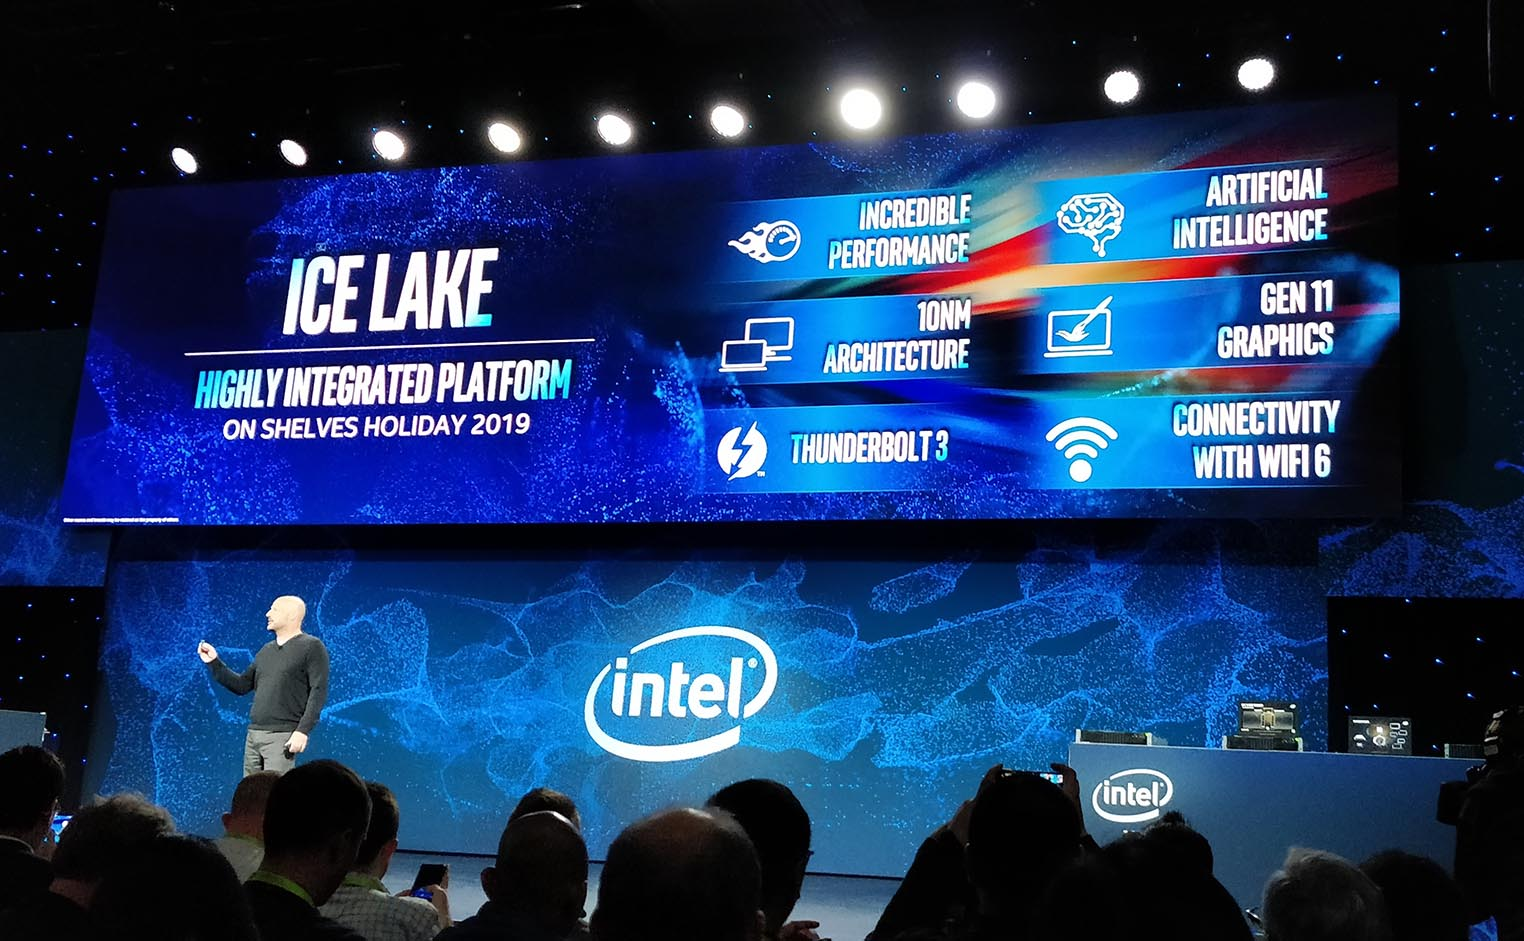 Intel Ice Lake keynote